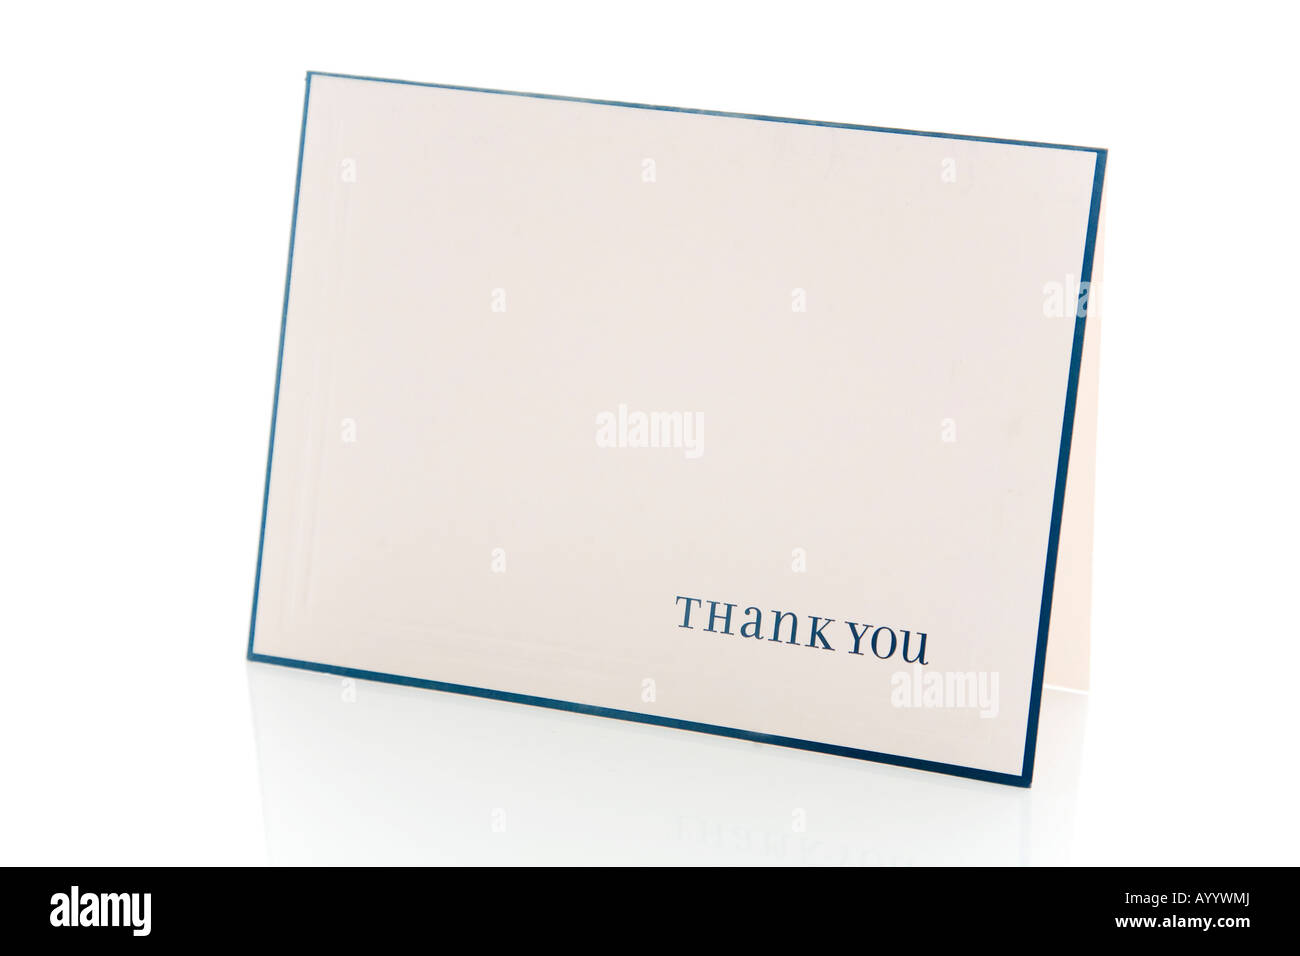 Thank You Card. - Stock Image